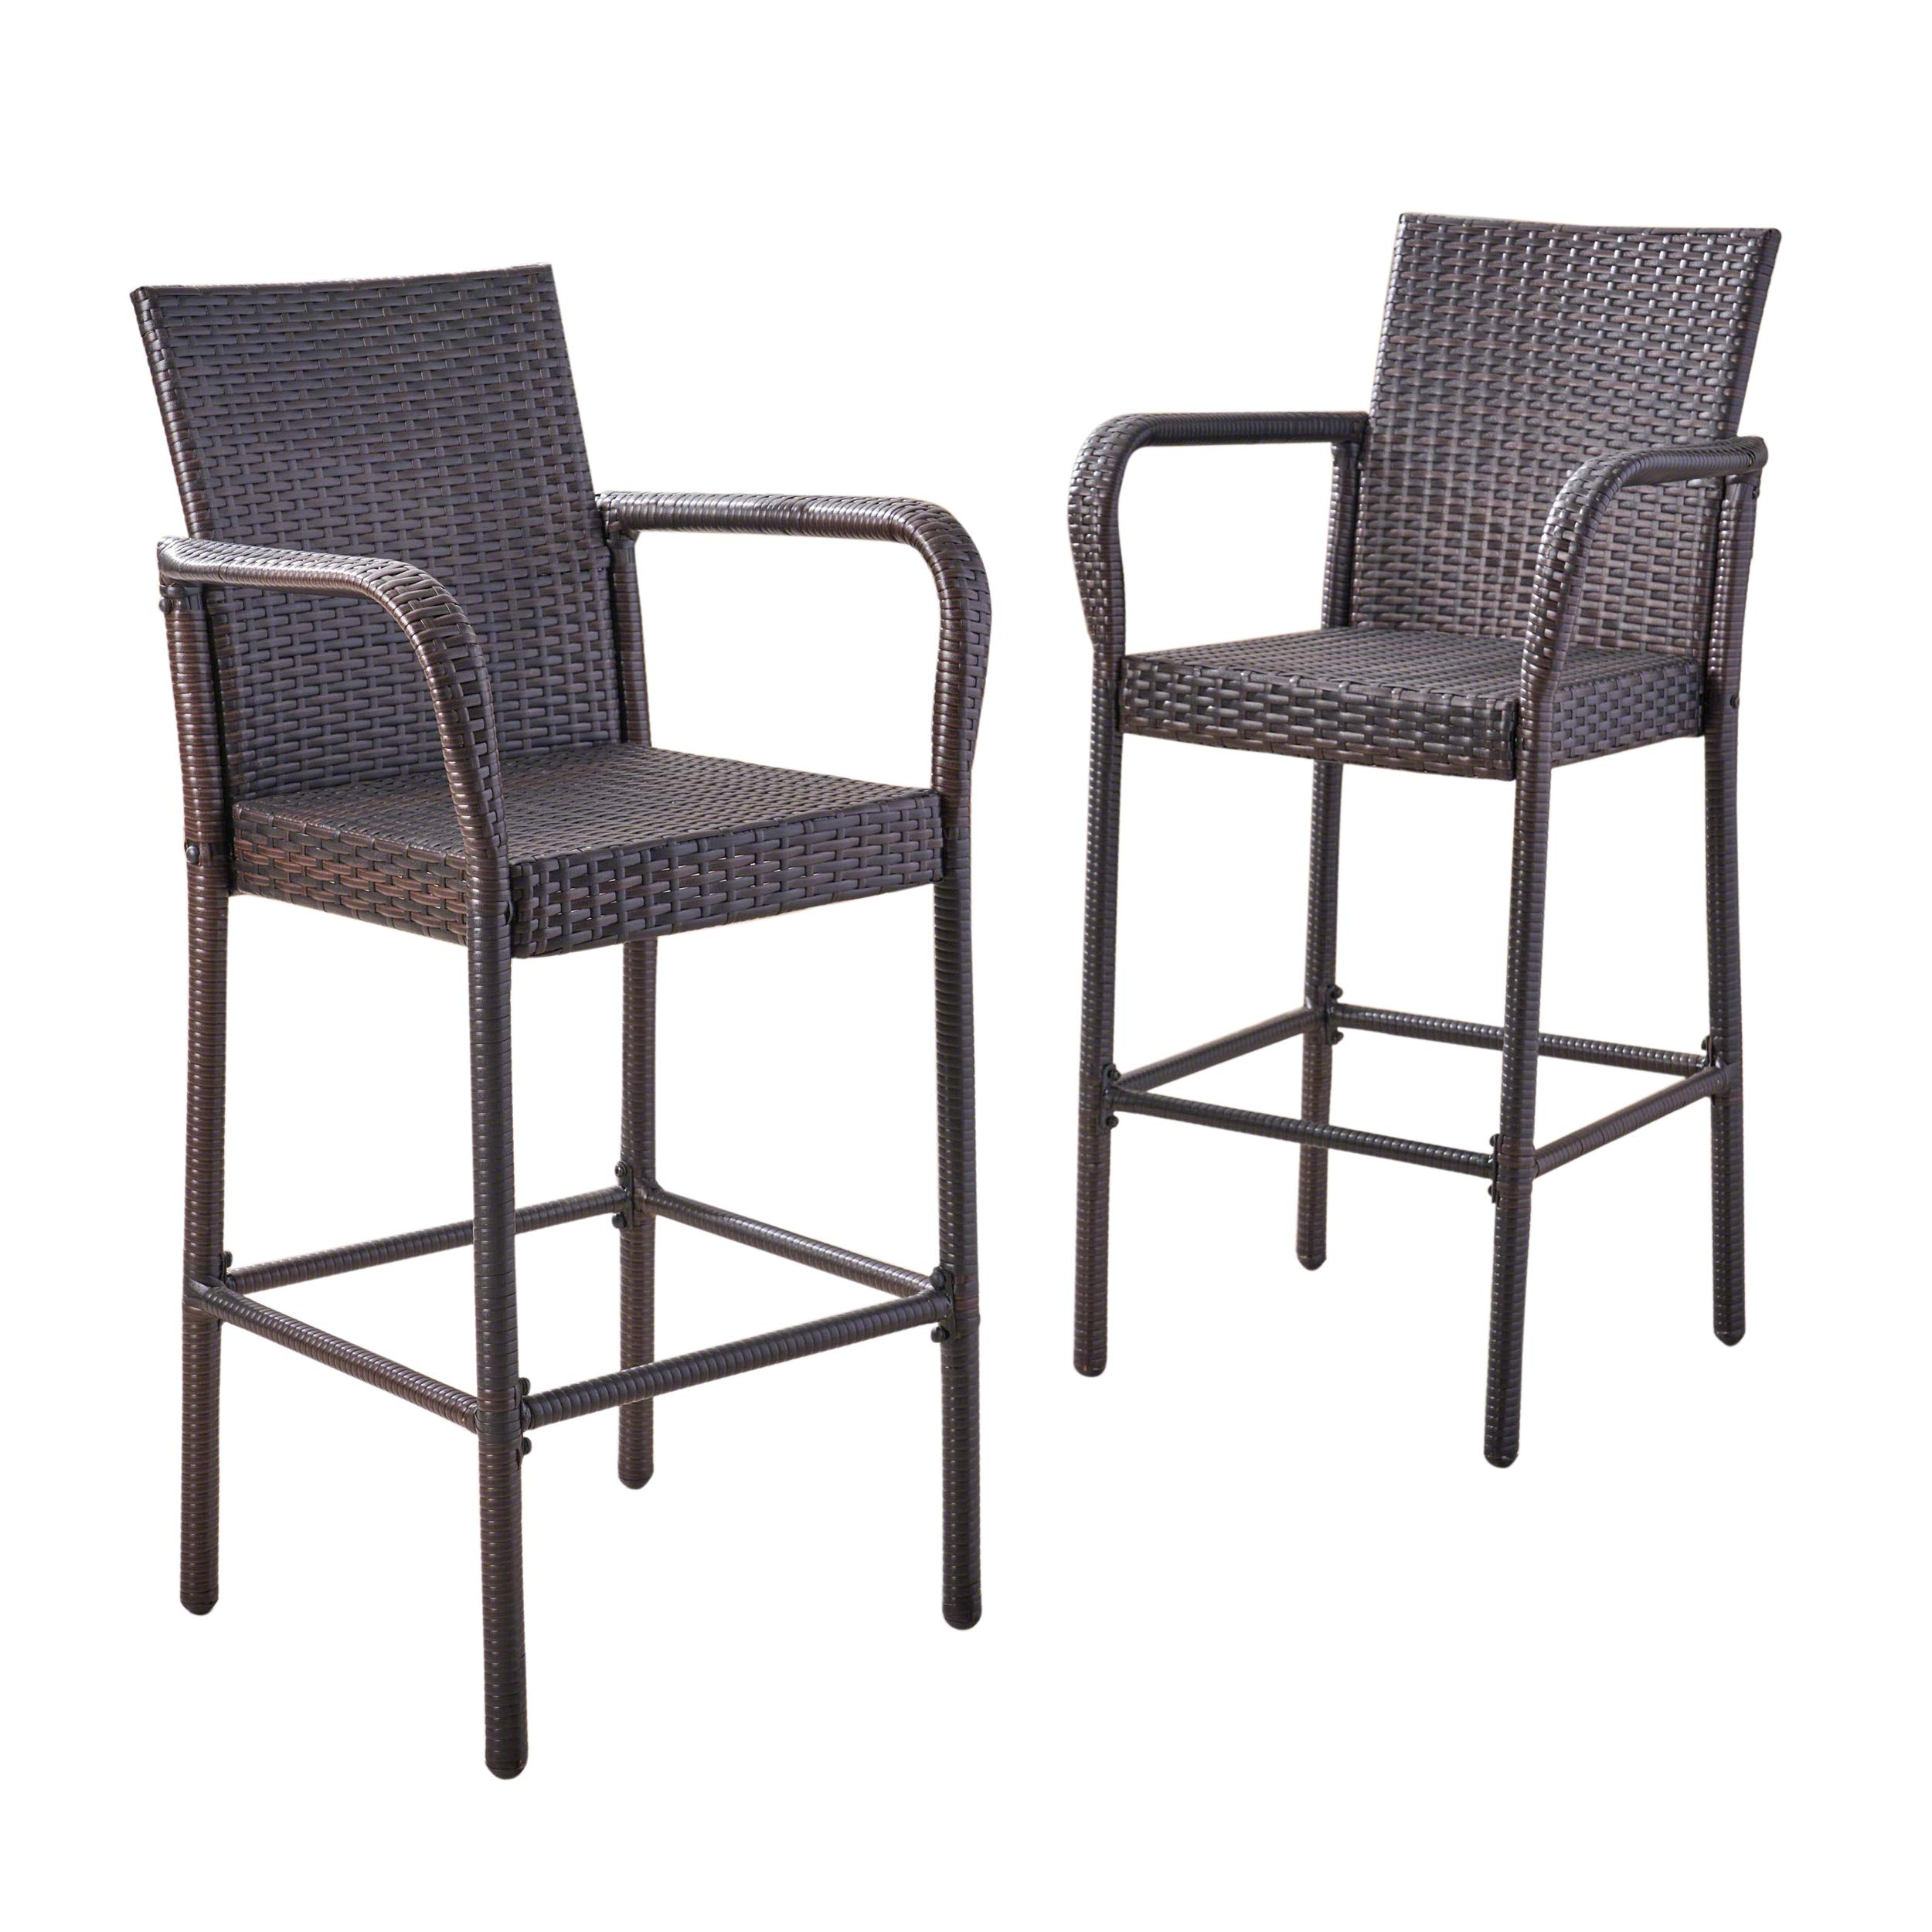 Great Deal Furniture Stewart Outdoor Bar Stool, Set of 2, Brown by Great Deal Furniture